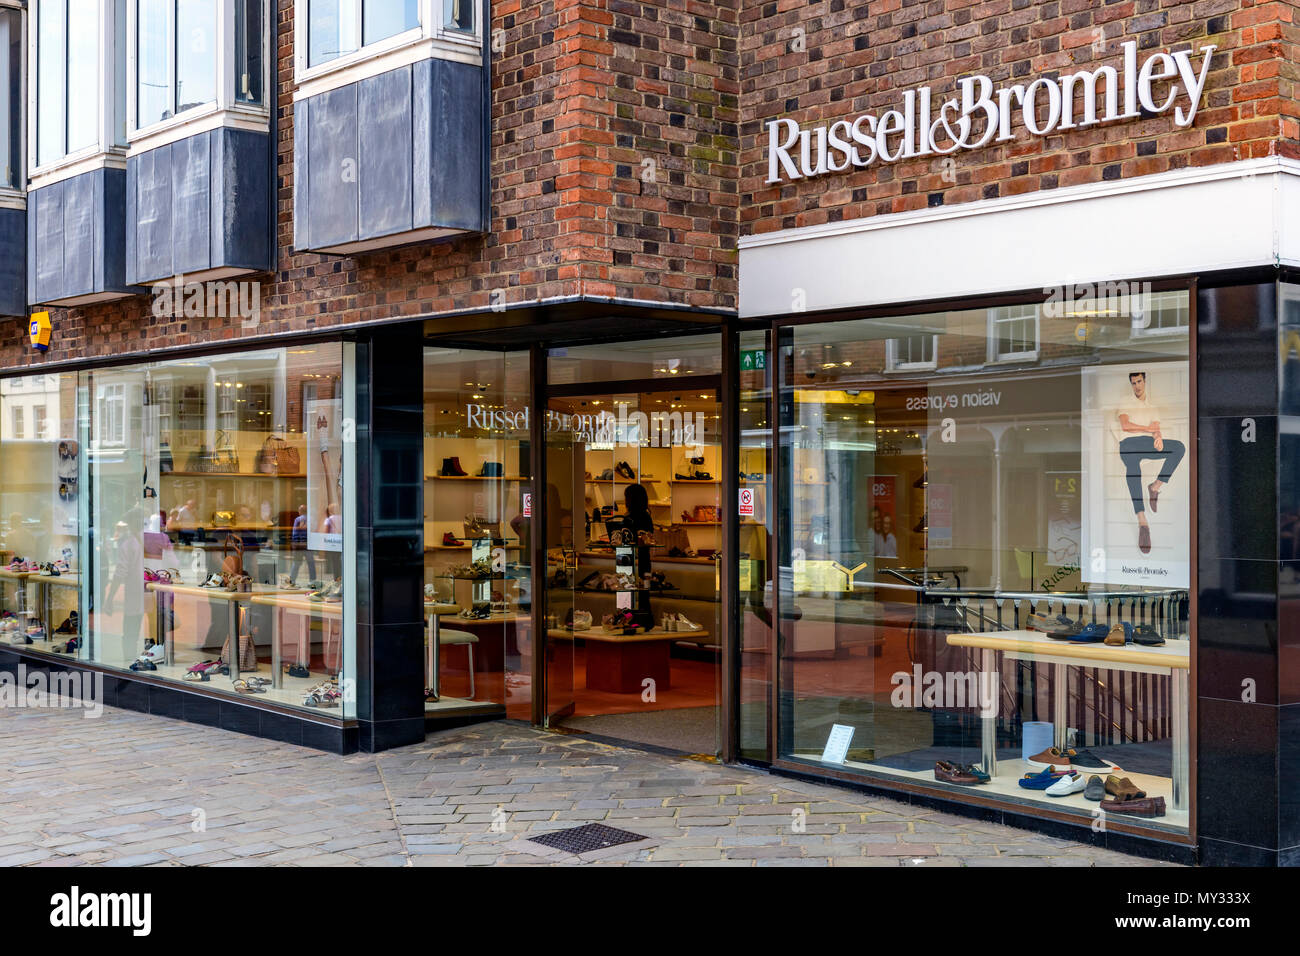 Russell & Bromley shopfront, Chichester UK - Stock Image